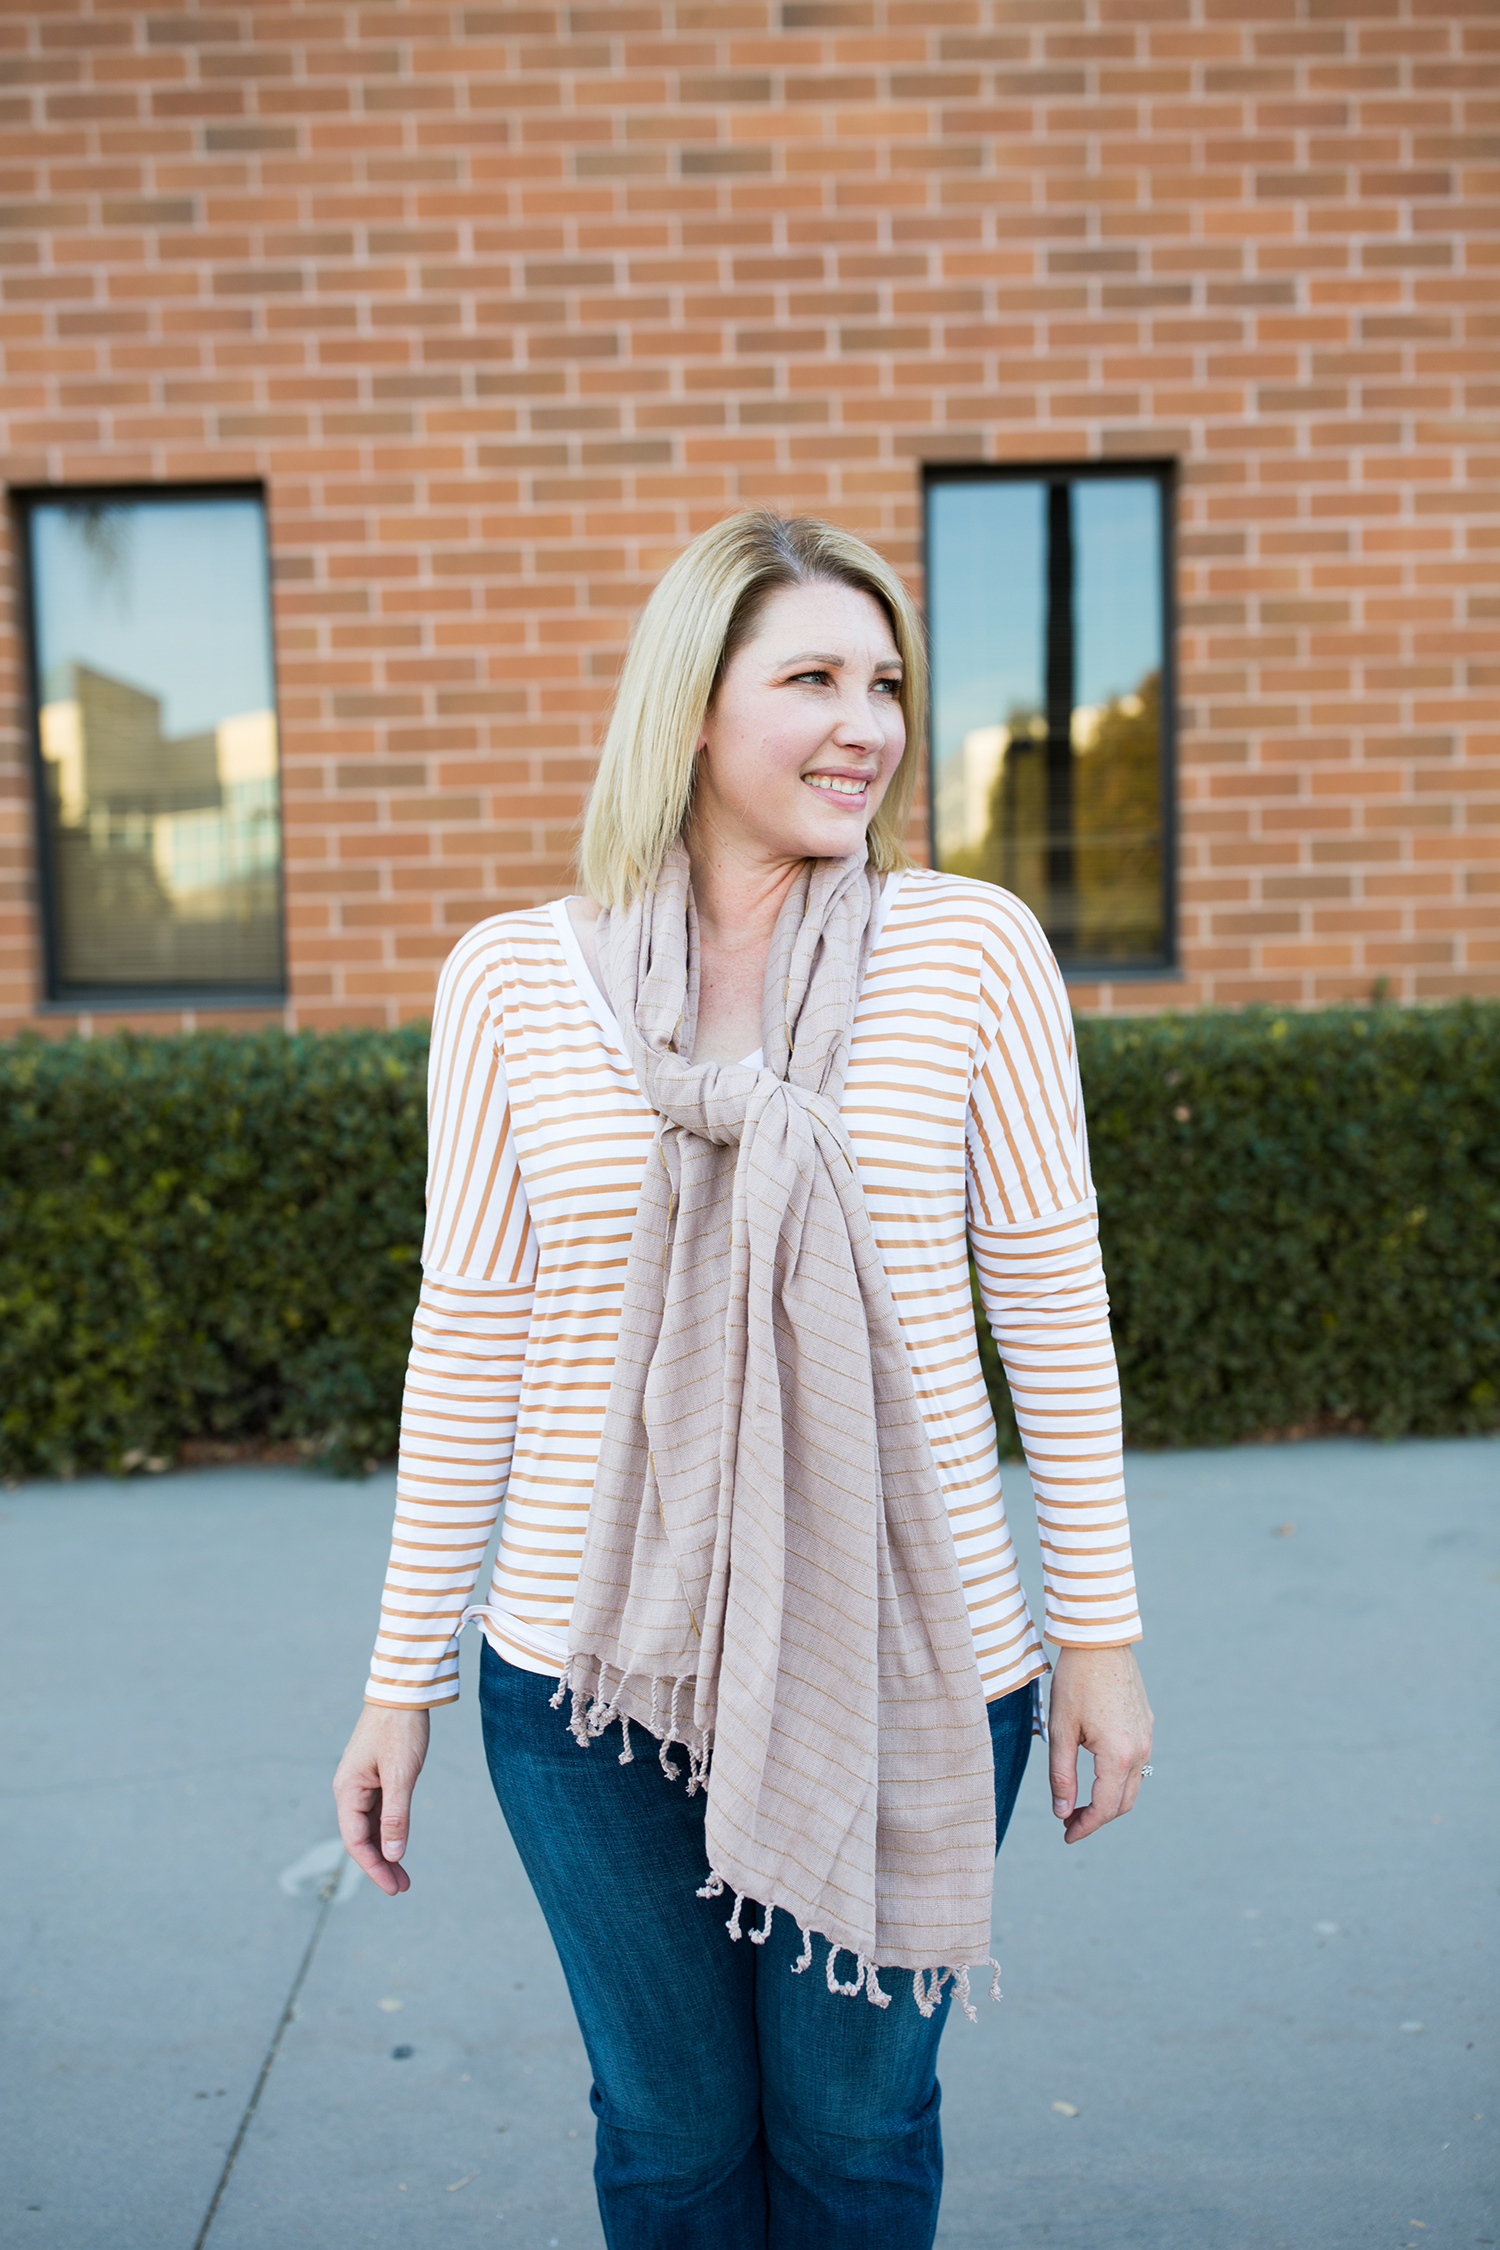 Fall Outfit: I love a great stripe tee for fall!